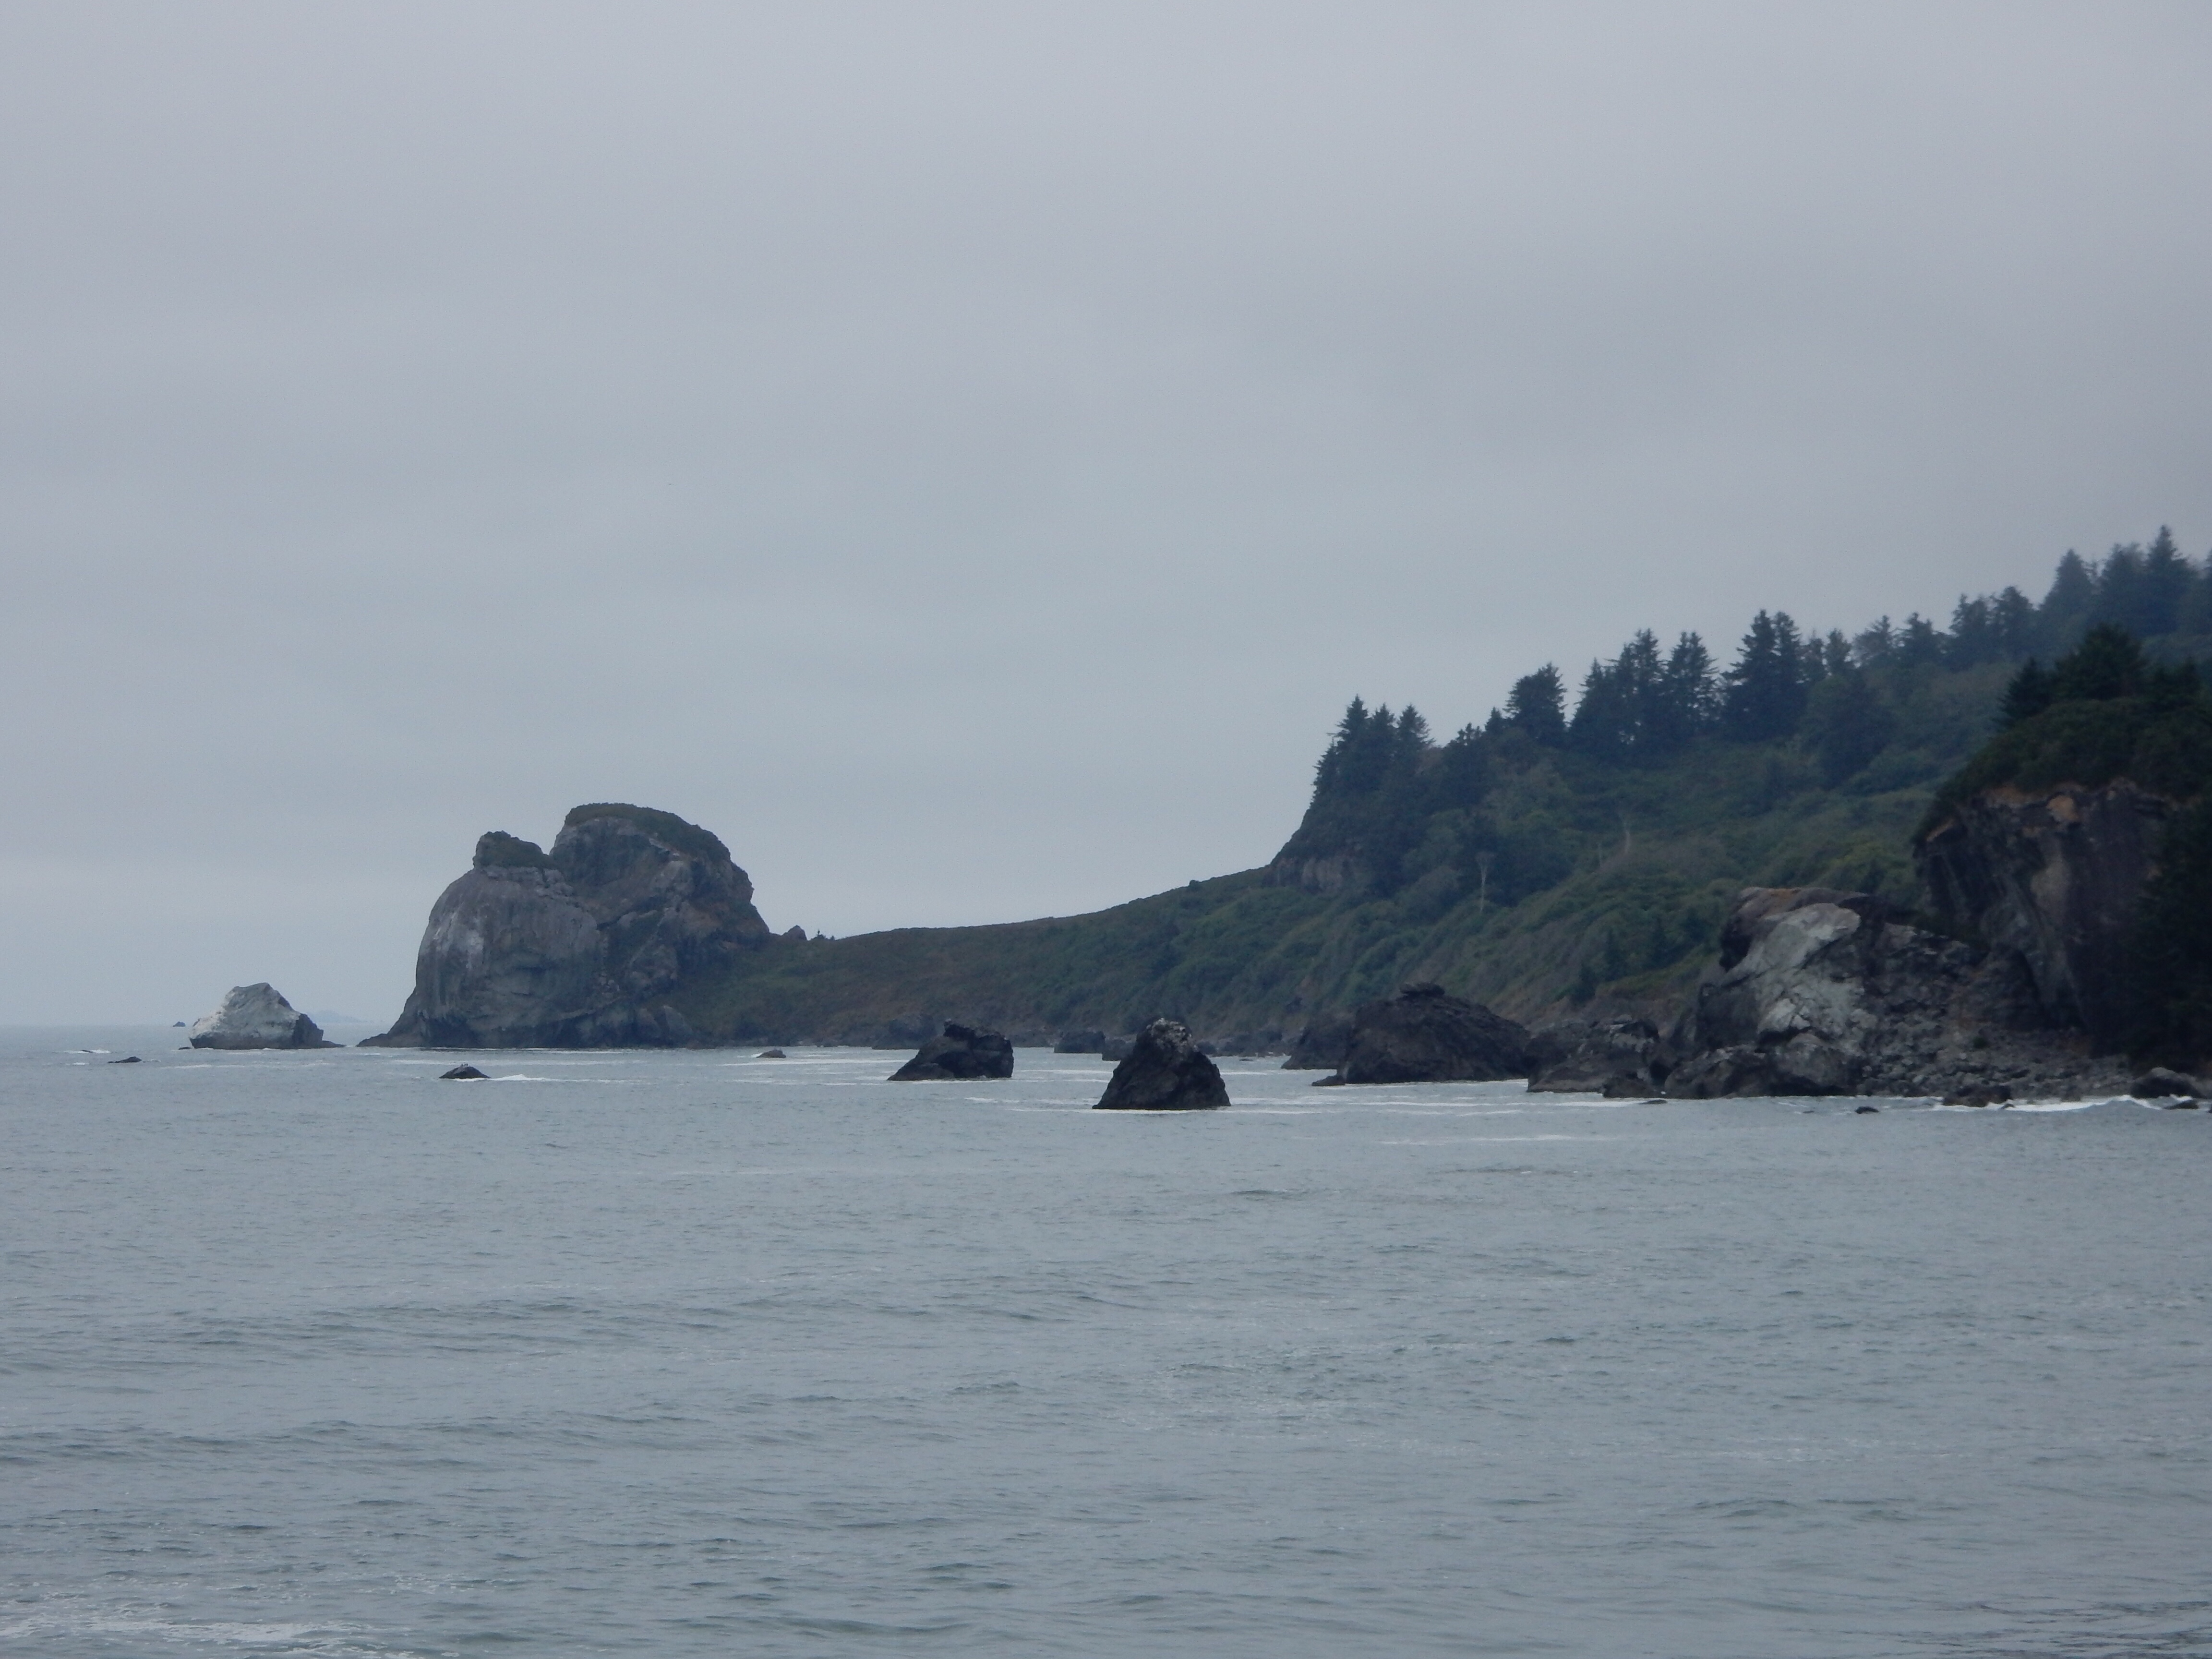 A tighter view of a point at the extreme south edge of Del Norte Coast Redwoods State Park.